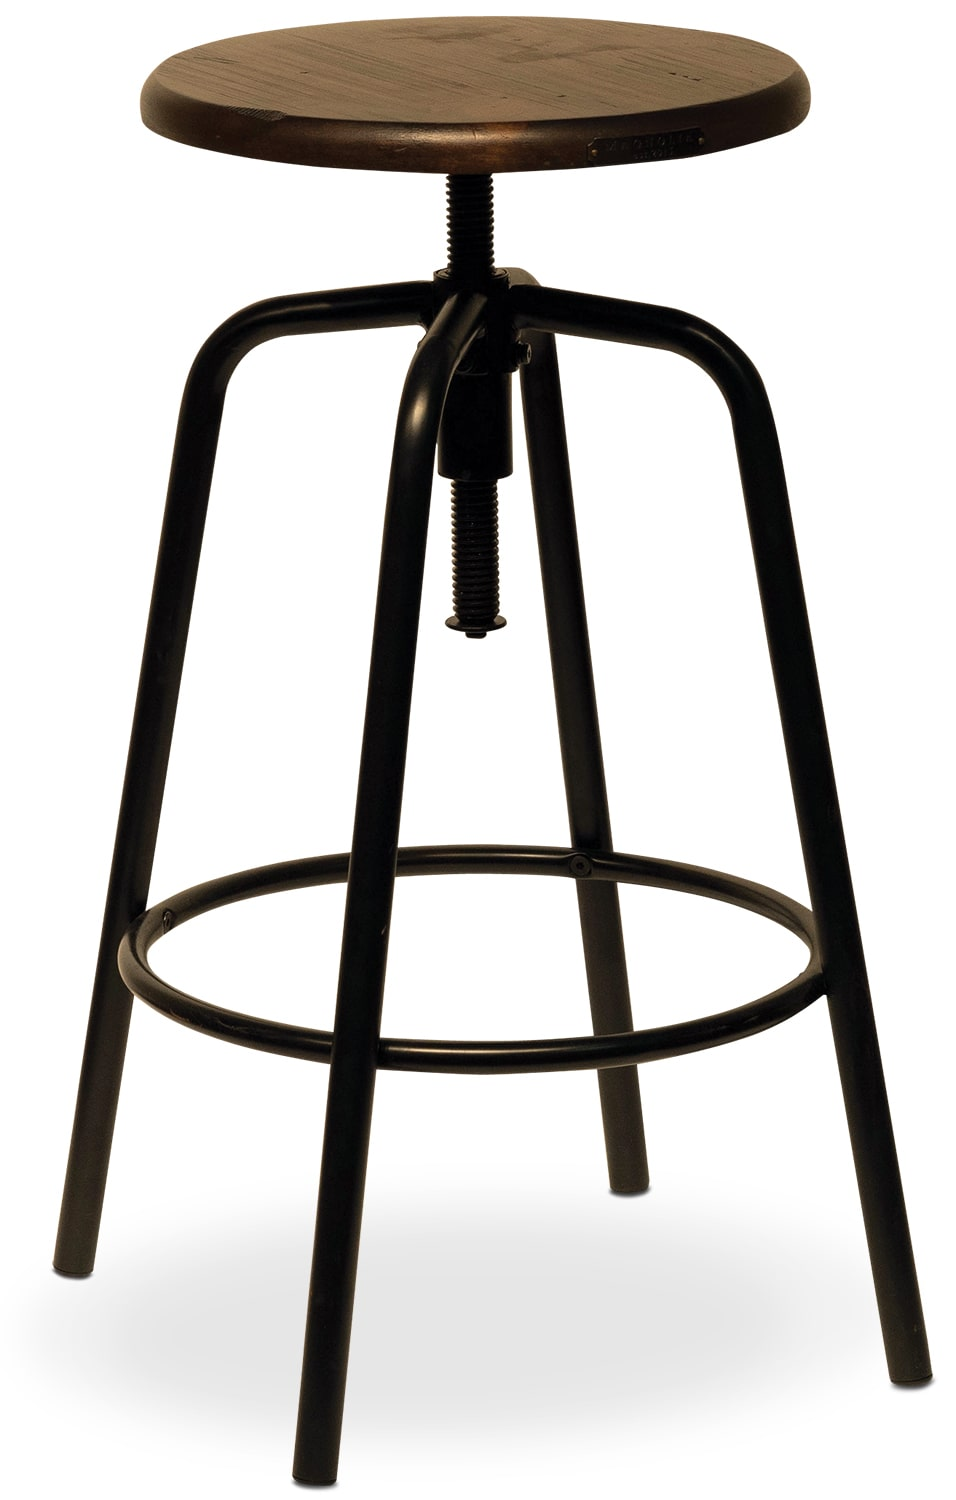 Factory Stool - Blackened Bronze